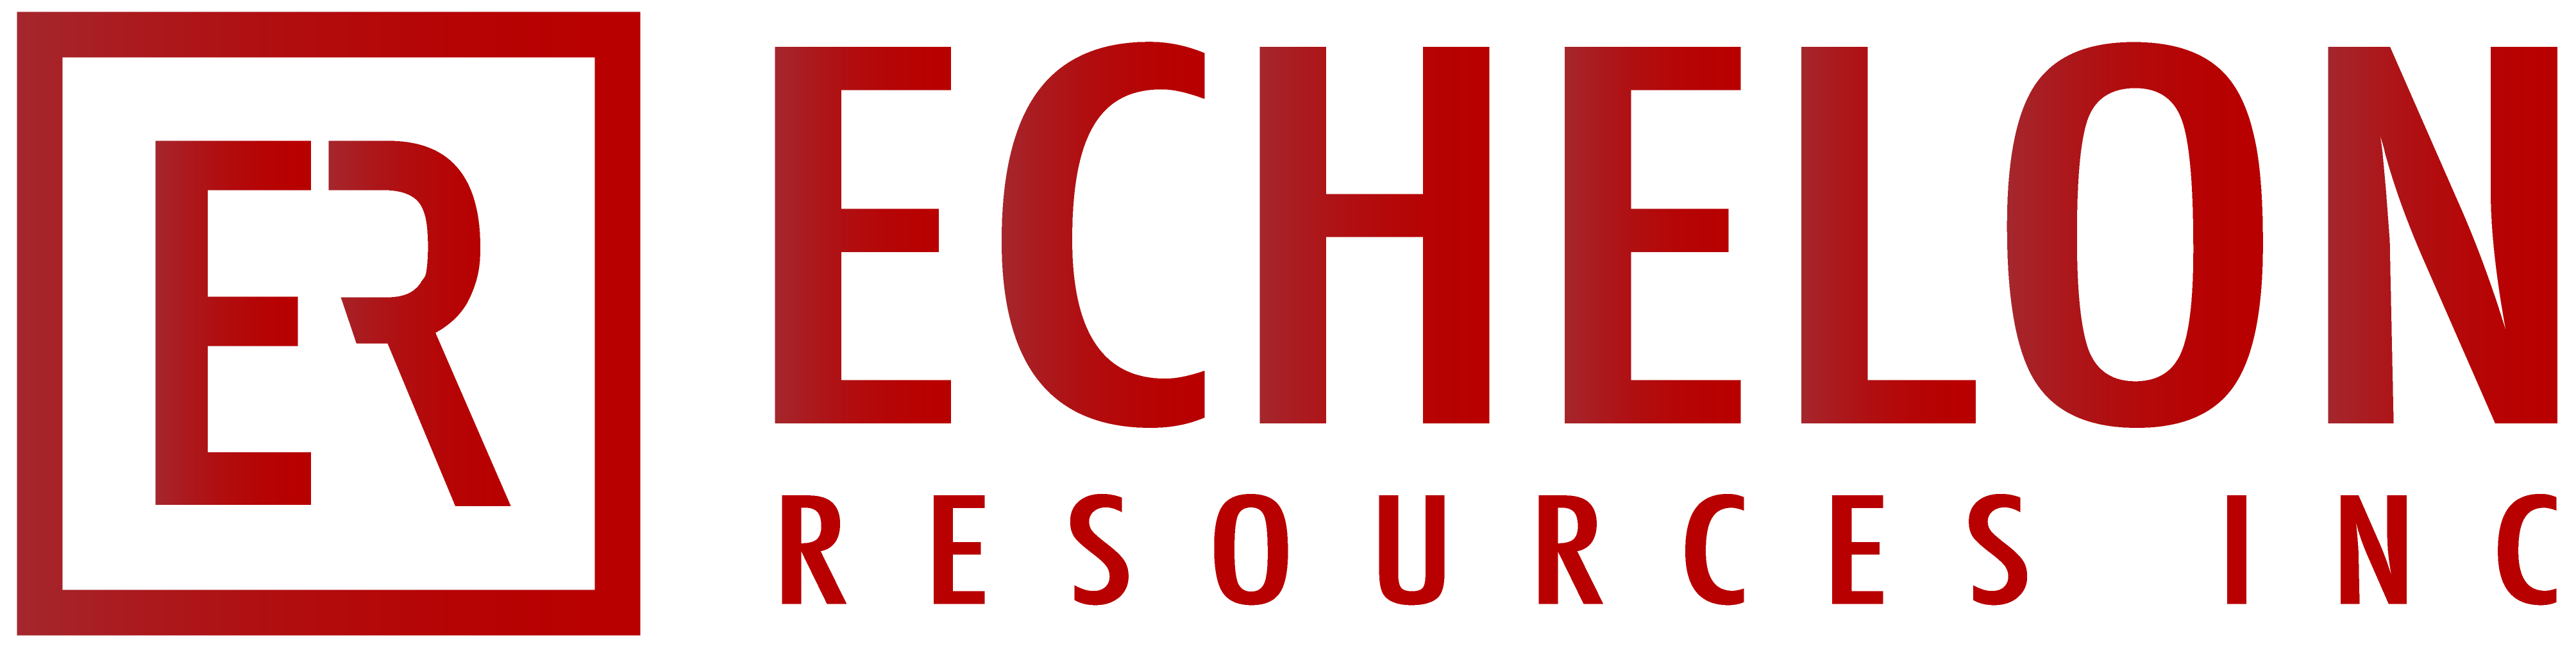 Echelon Resources, Inc.